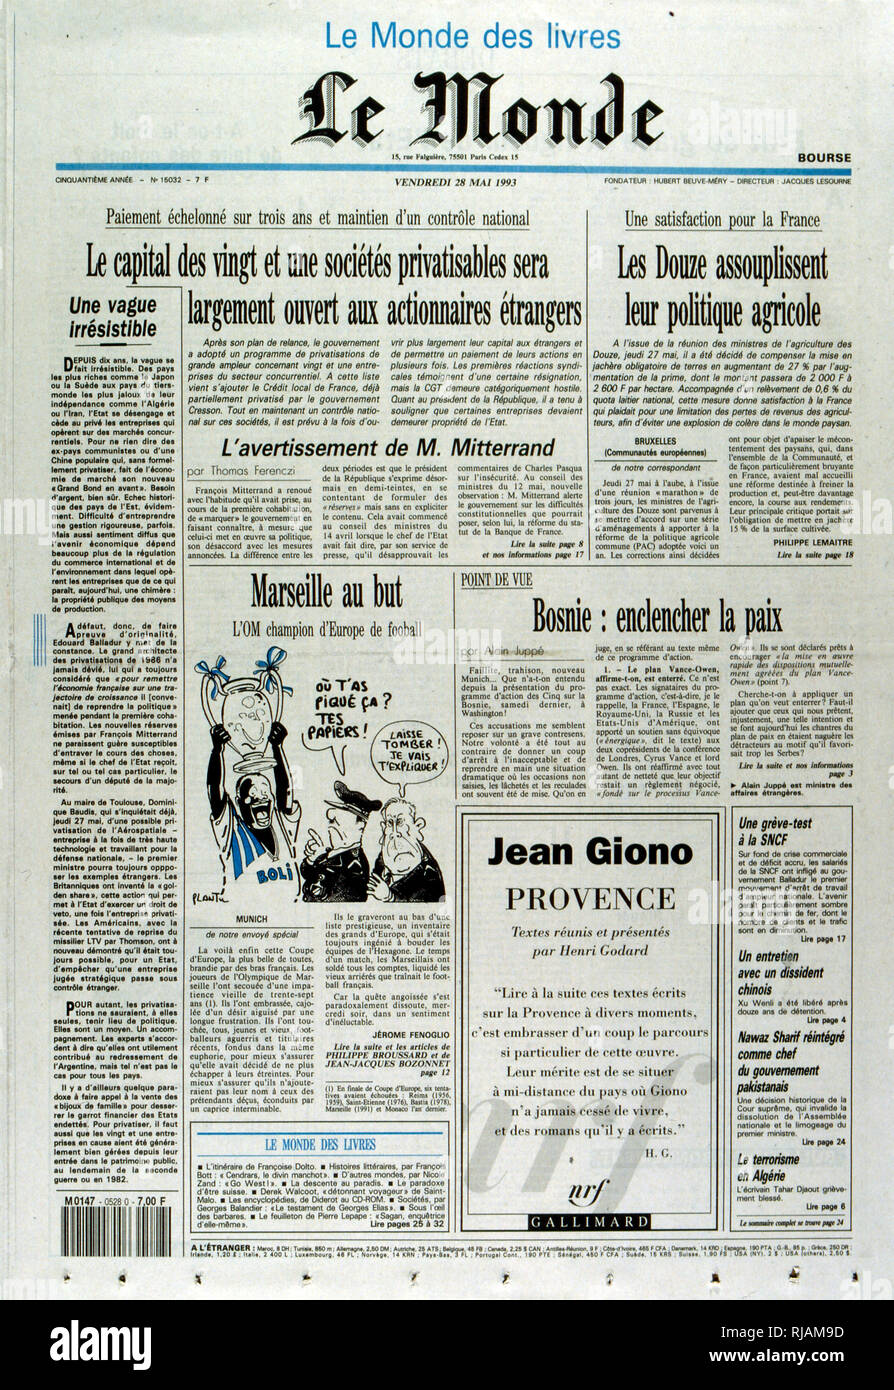 French publication 'Le Monde' reporting the French governments plans to privatise state industries following the 1993 French elections - Stock Image